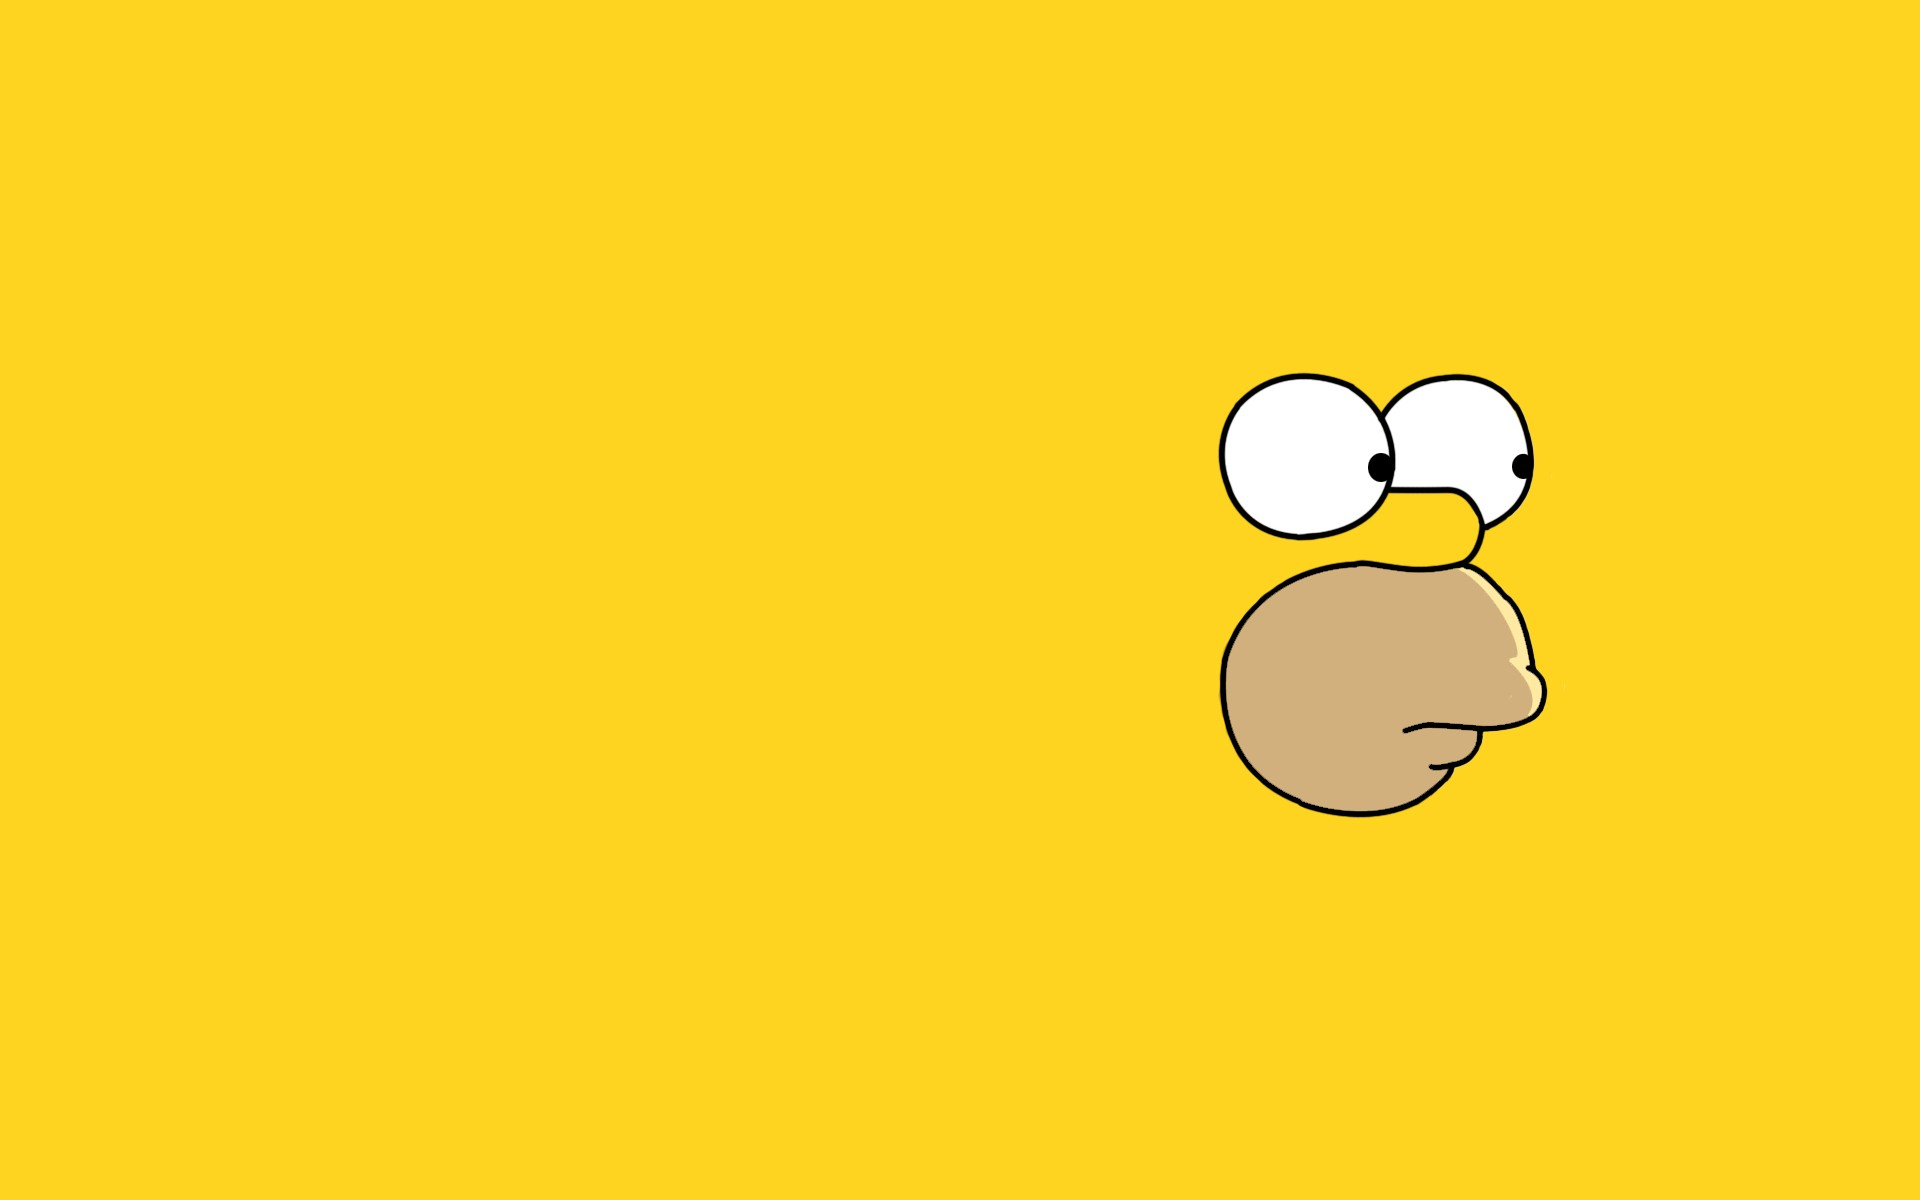 simpsons wallpaper yellow